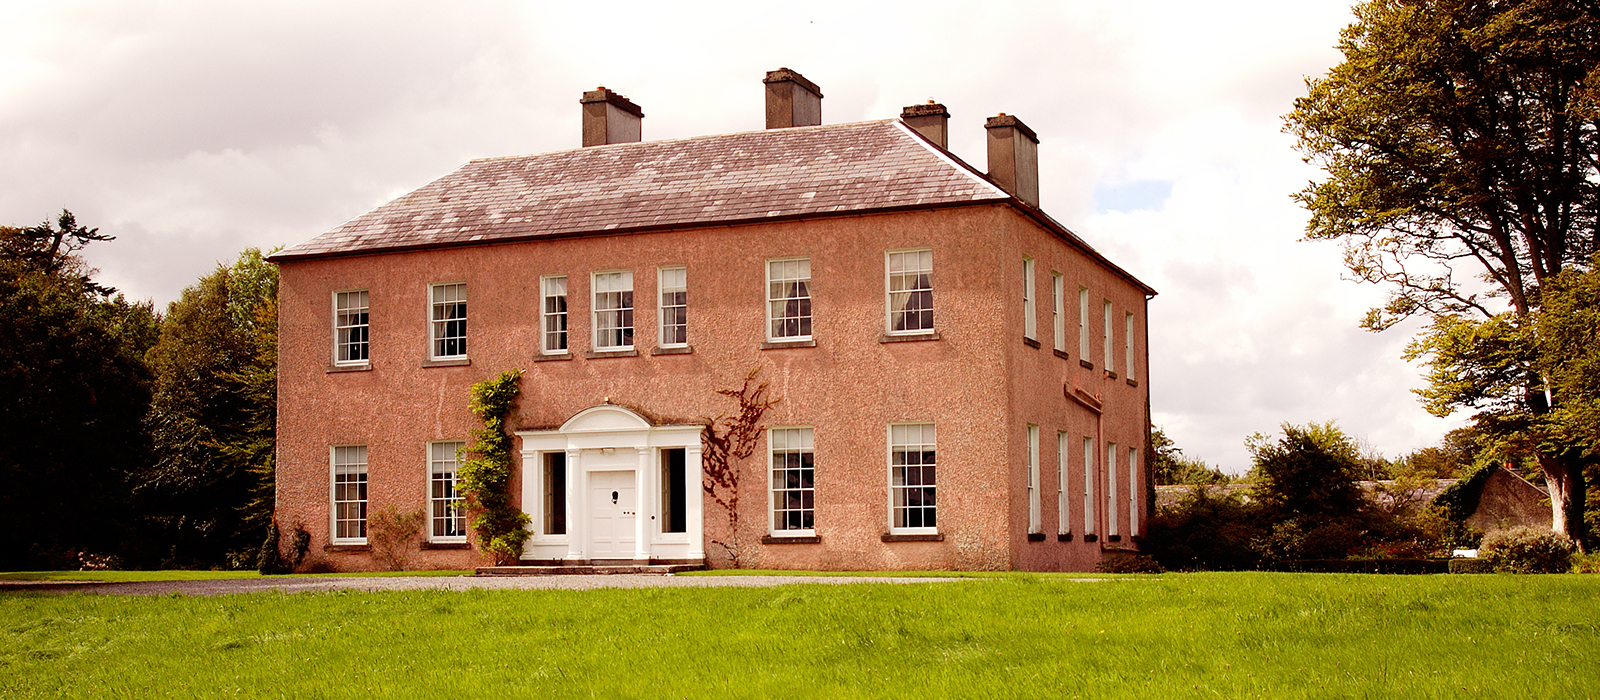 Guided Tour of North Mayo Heritage Centre and Enniscoe House  - Architecture at the Edge Festival Galway & Mayo